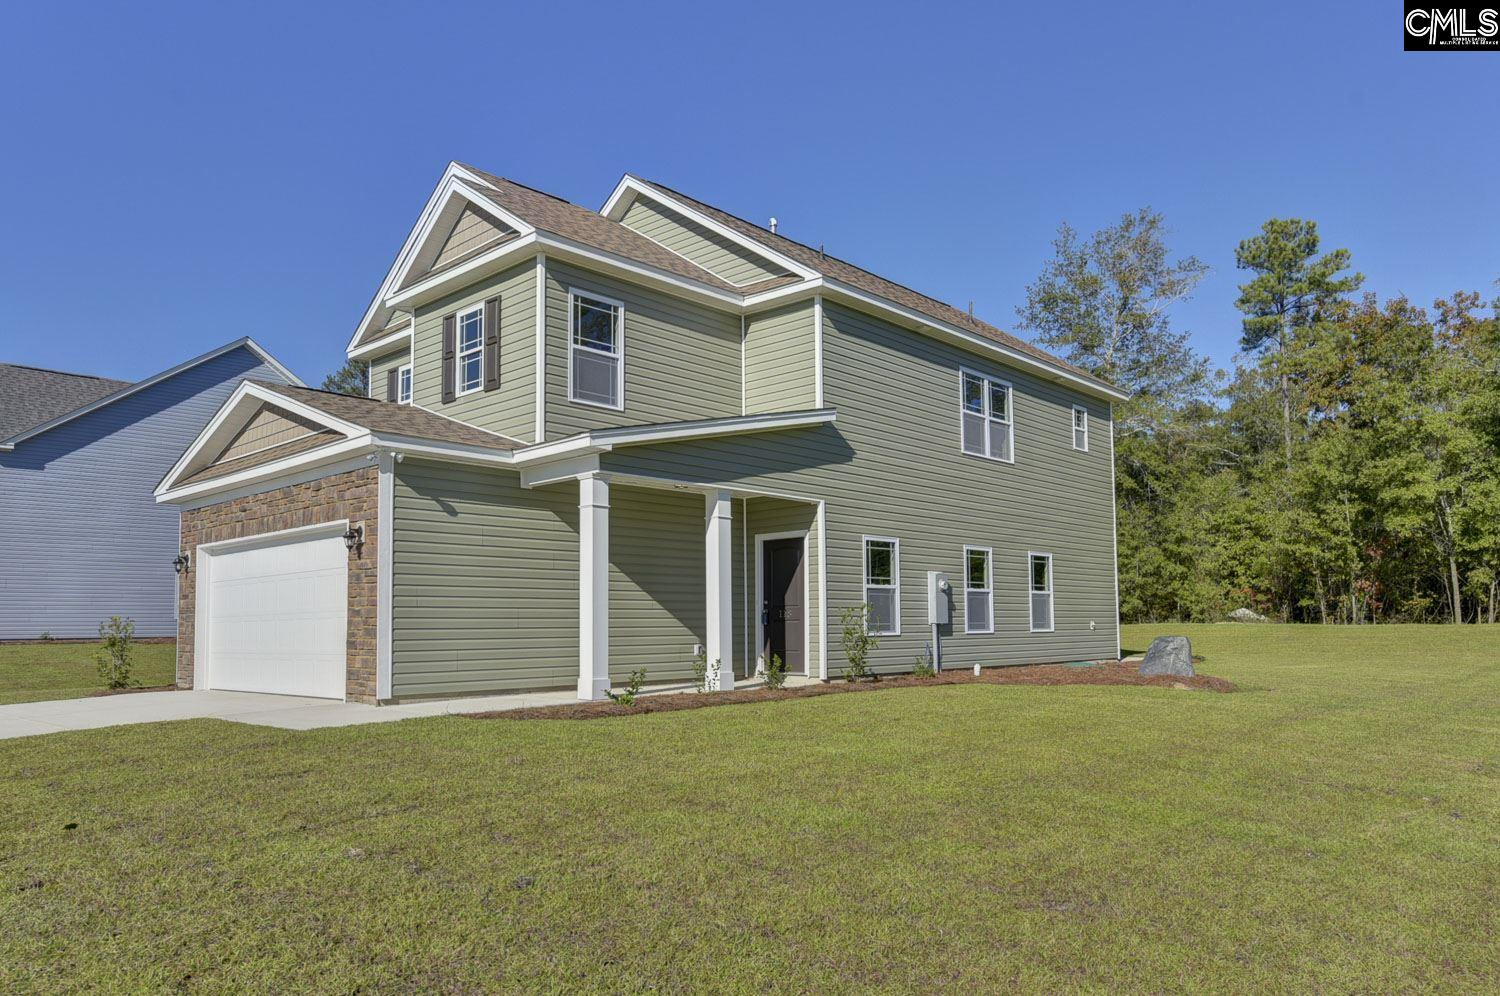 118 Tall Pines Gaston, SC 29053